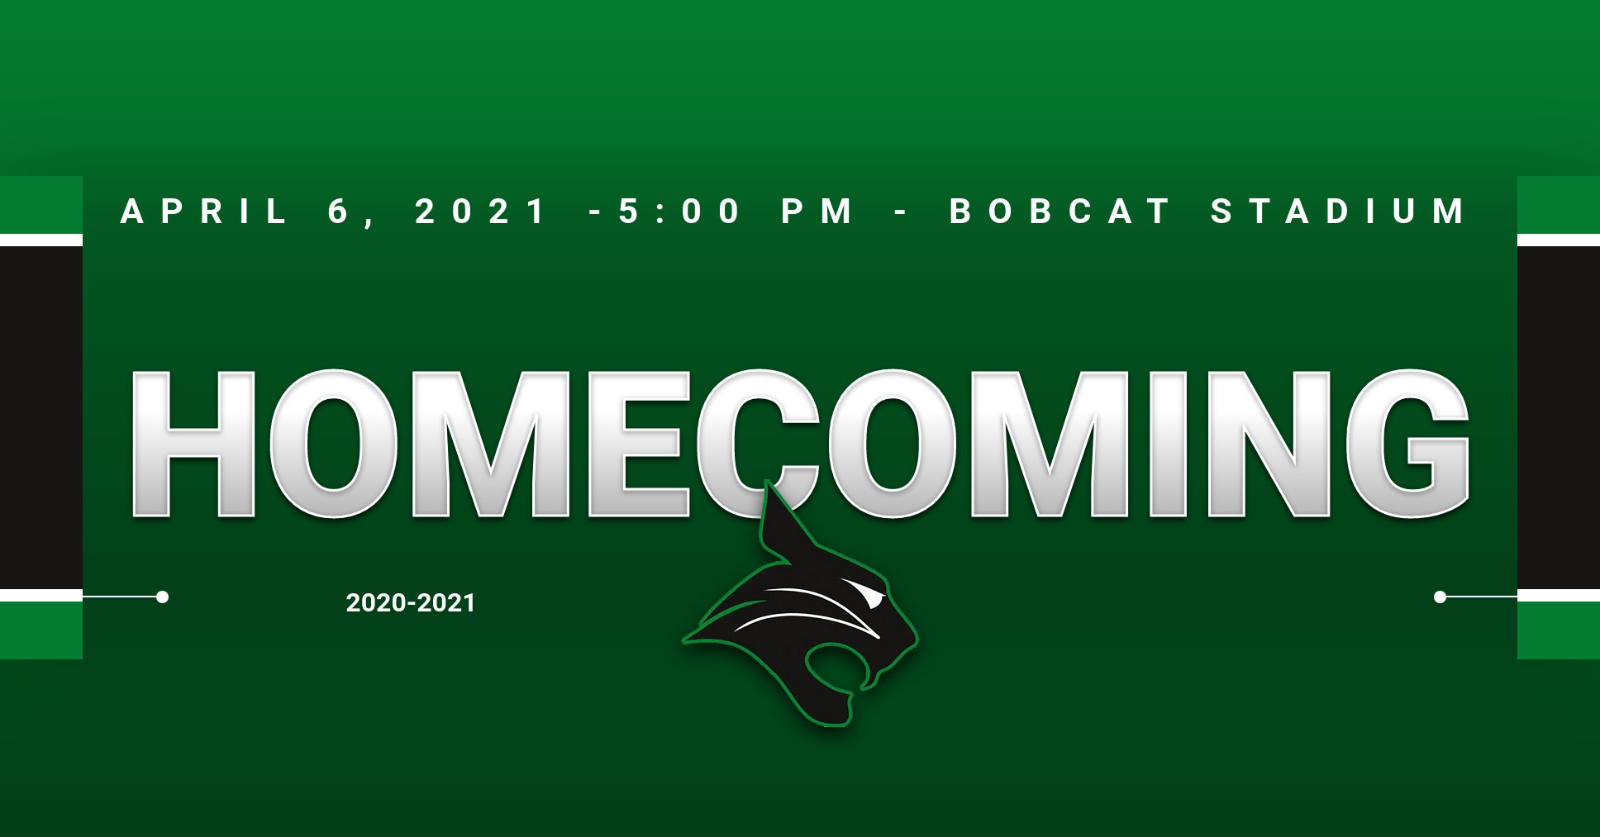 Homecoming 2020-2021 on April 6